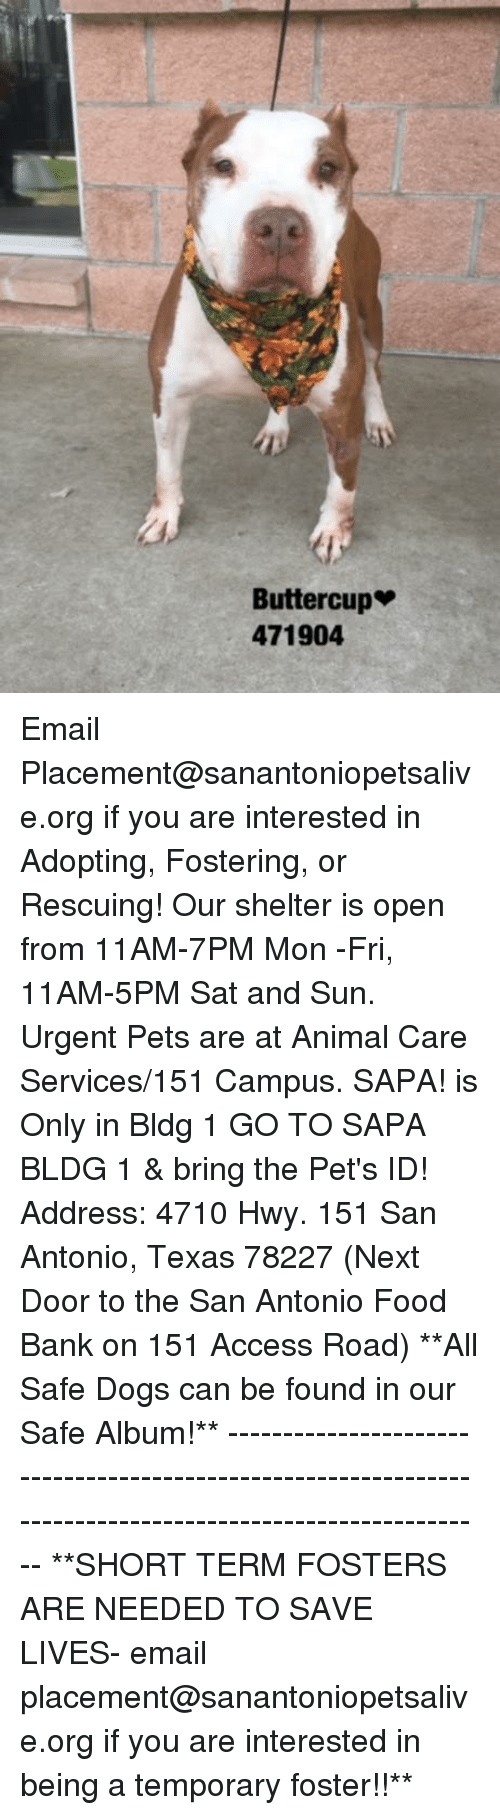 Dogs, Food, and Memes: Buttercup  471904 Email Placement@sanantoniopetsalive.org if you are interested in Adopting, Fostering, or Rescuing!  Our shelter is open from 11AM-7PM Mon -Fri, 11AM-5PM Sat and Sun.  Urgent Pets are at Animal Care Services/151 Campus. SAPA! is Only in Bldg 1 GO TO SAPA BLDG 1 & bring the Pet's ID! Address: 4710 Hwy. 151 San Antonio, Texas 78227 (Next Door to the San Antonio Food Bank on 151 Access Road)  **All Safe Dogs can be found in our Safe Album!** ---------------------------------------------------------------------------------------------------------- **SHORT TERM FOSTERS ARE NEEDED TO SAVE LIVES- email placement@sanantoniopetsalive.org if you are interested in being a temporary foster!!**